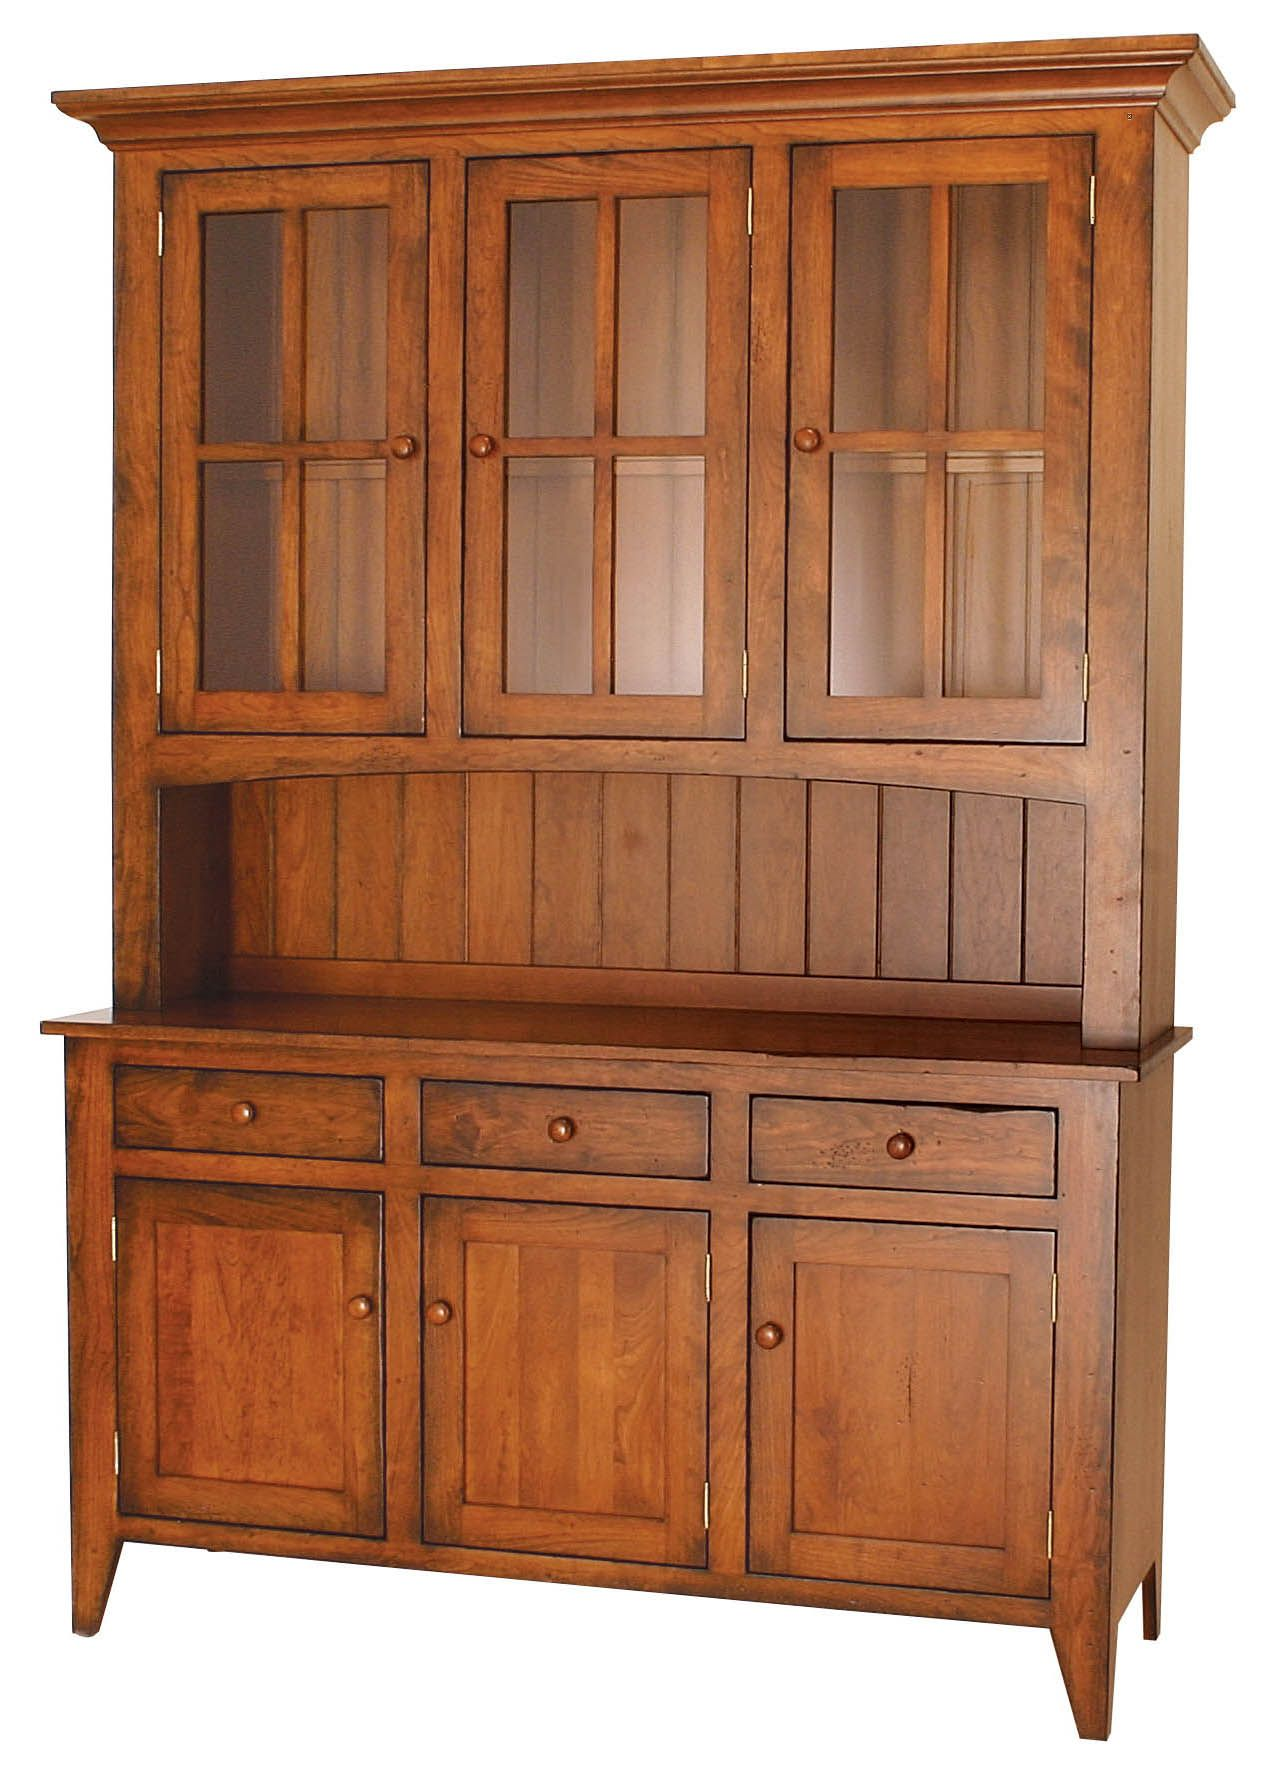 Ashville Farmhouse Cherry Wood Hutch Amish Furniture Solid Mission Shaker Chicago Area Illinois